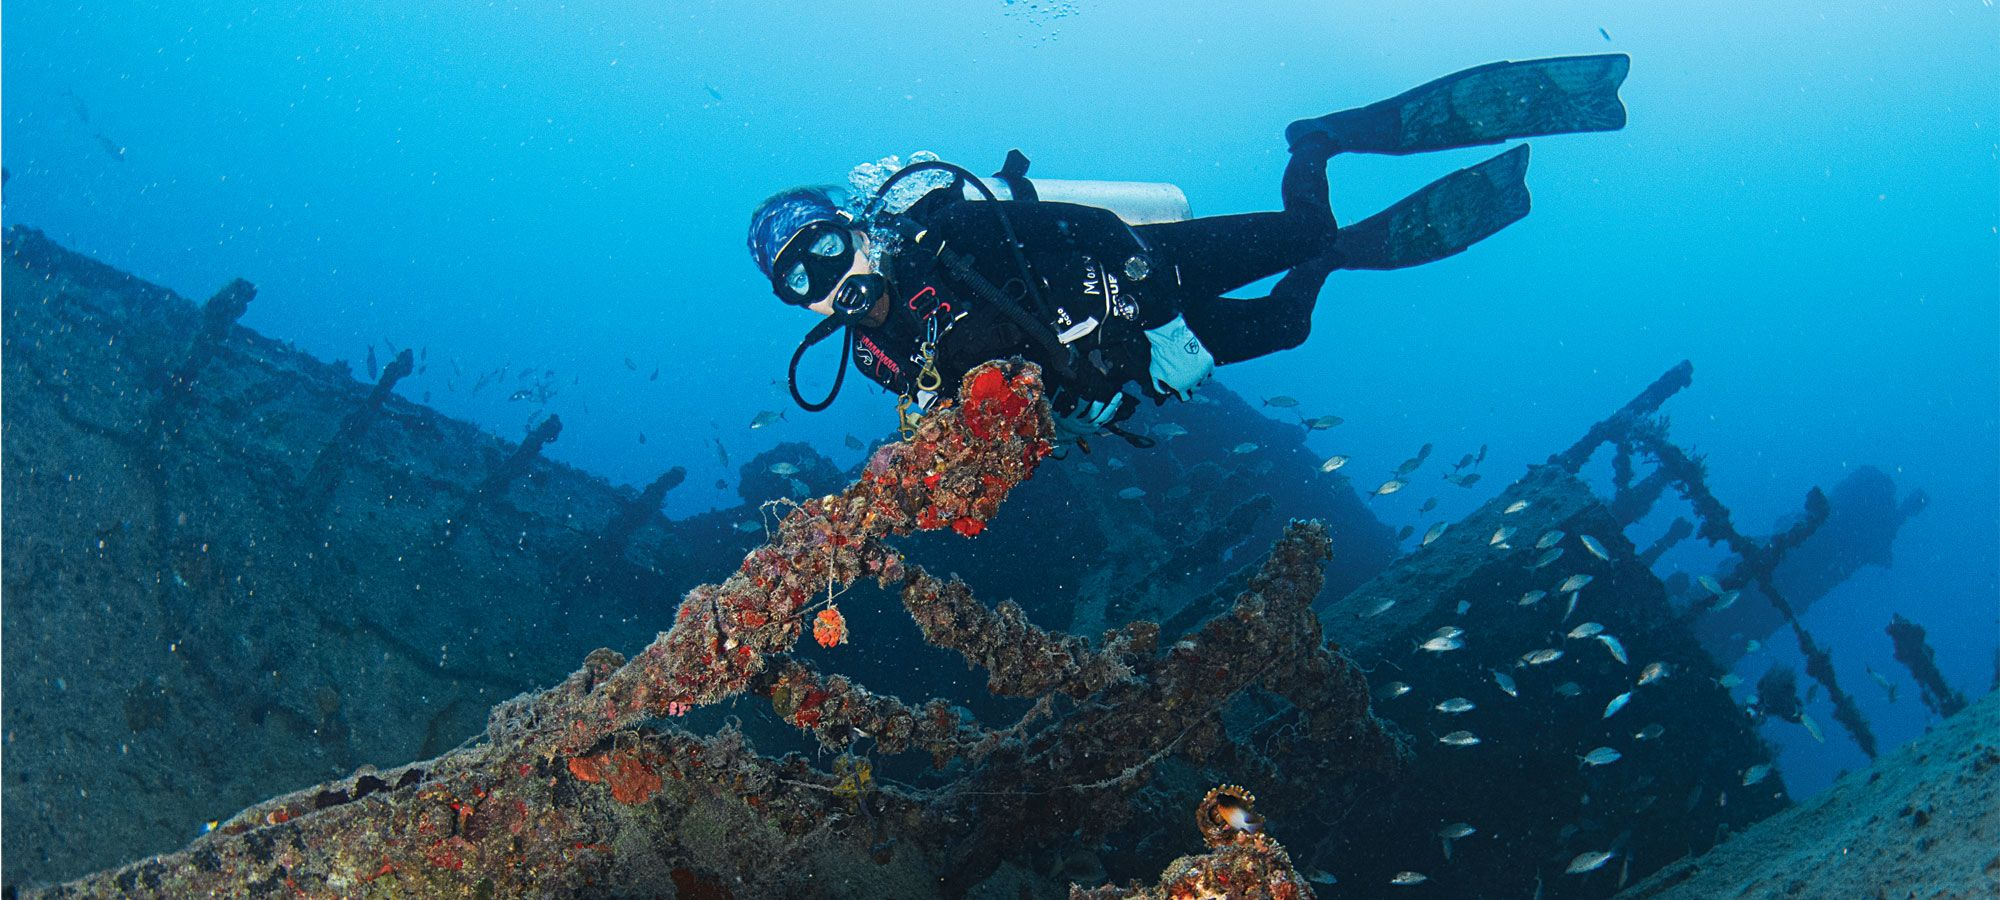 The Best Overall Destinations for Scuba Diving